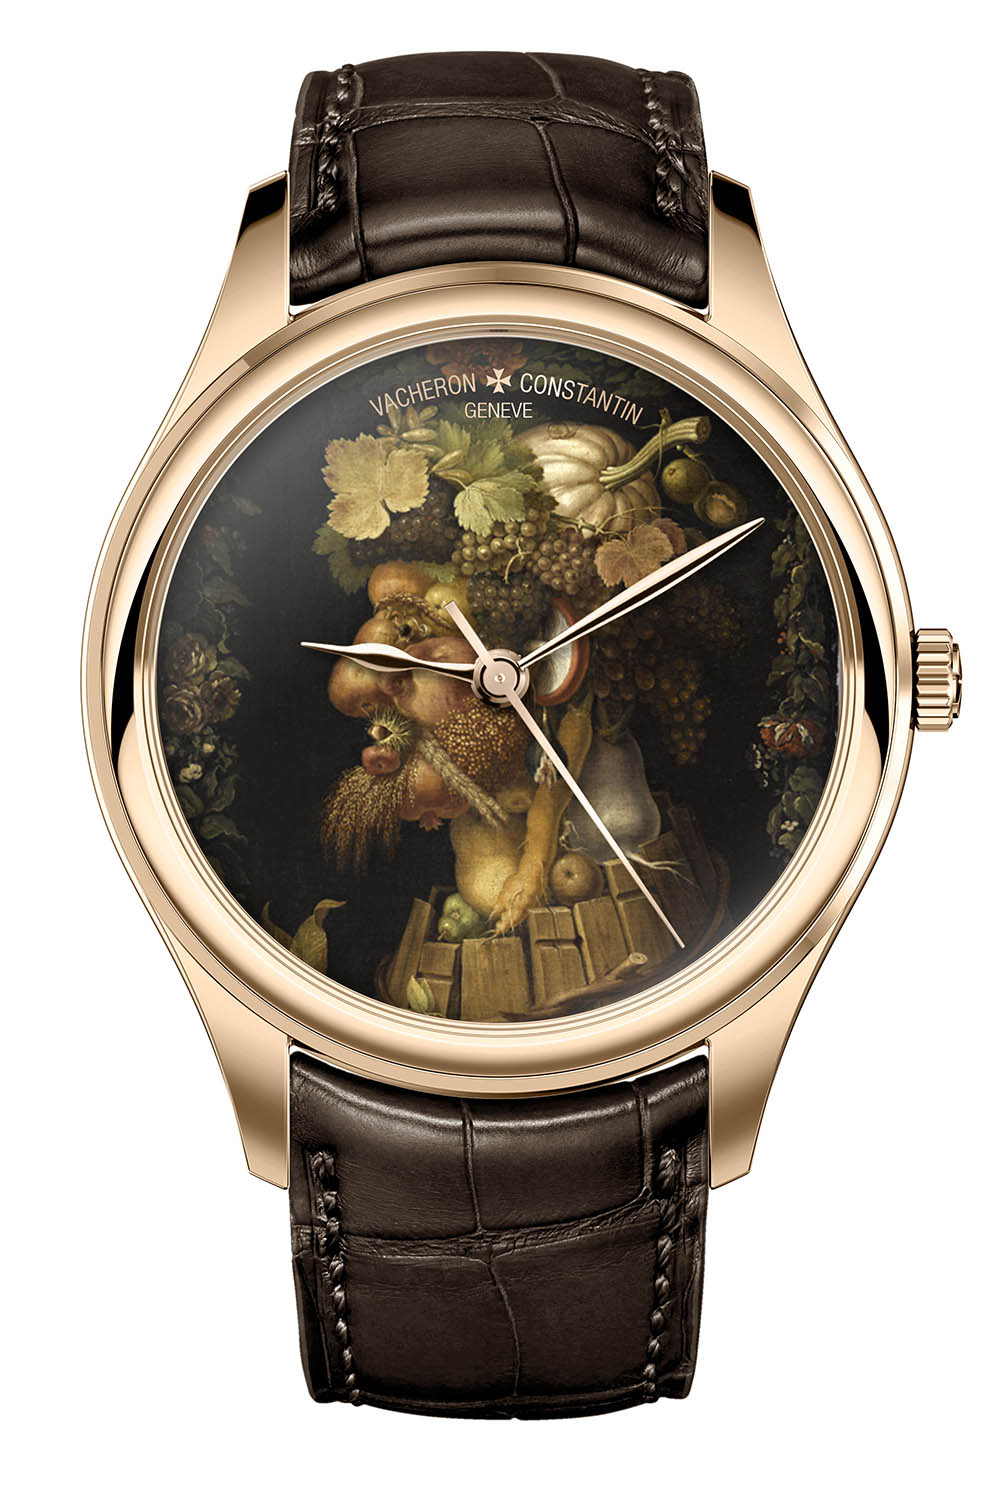 Bespoke Vacheron Constantin up for auction at the Louvre Museum - 3